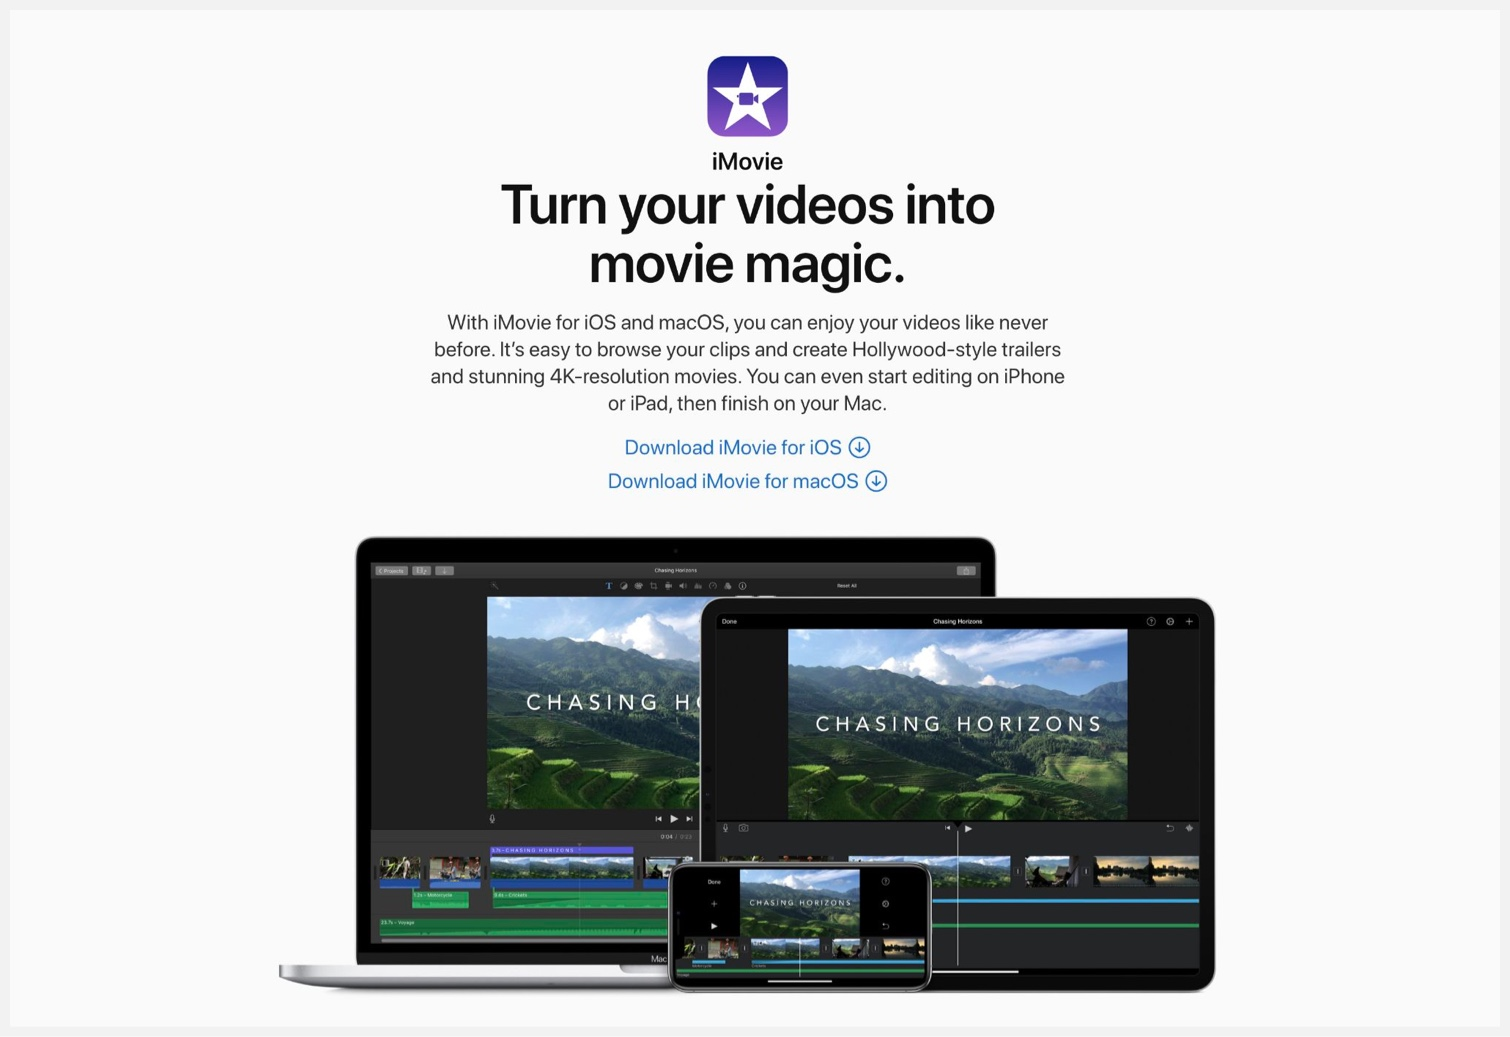 Apples web page for iMovie